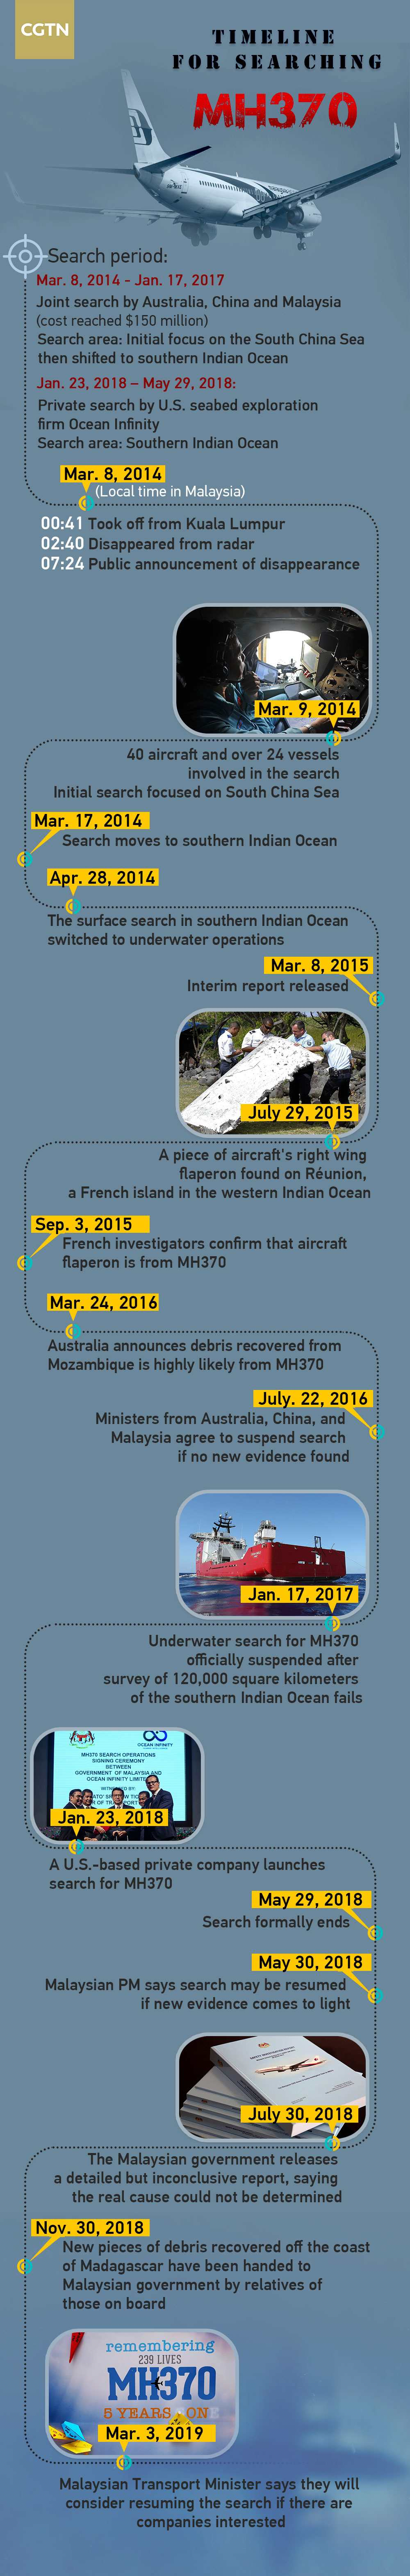 Infographic: A timeline of the search for MH370 - CGTN